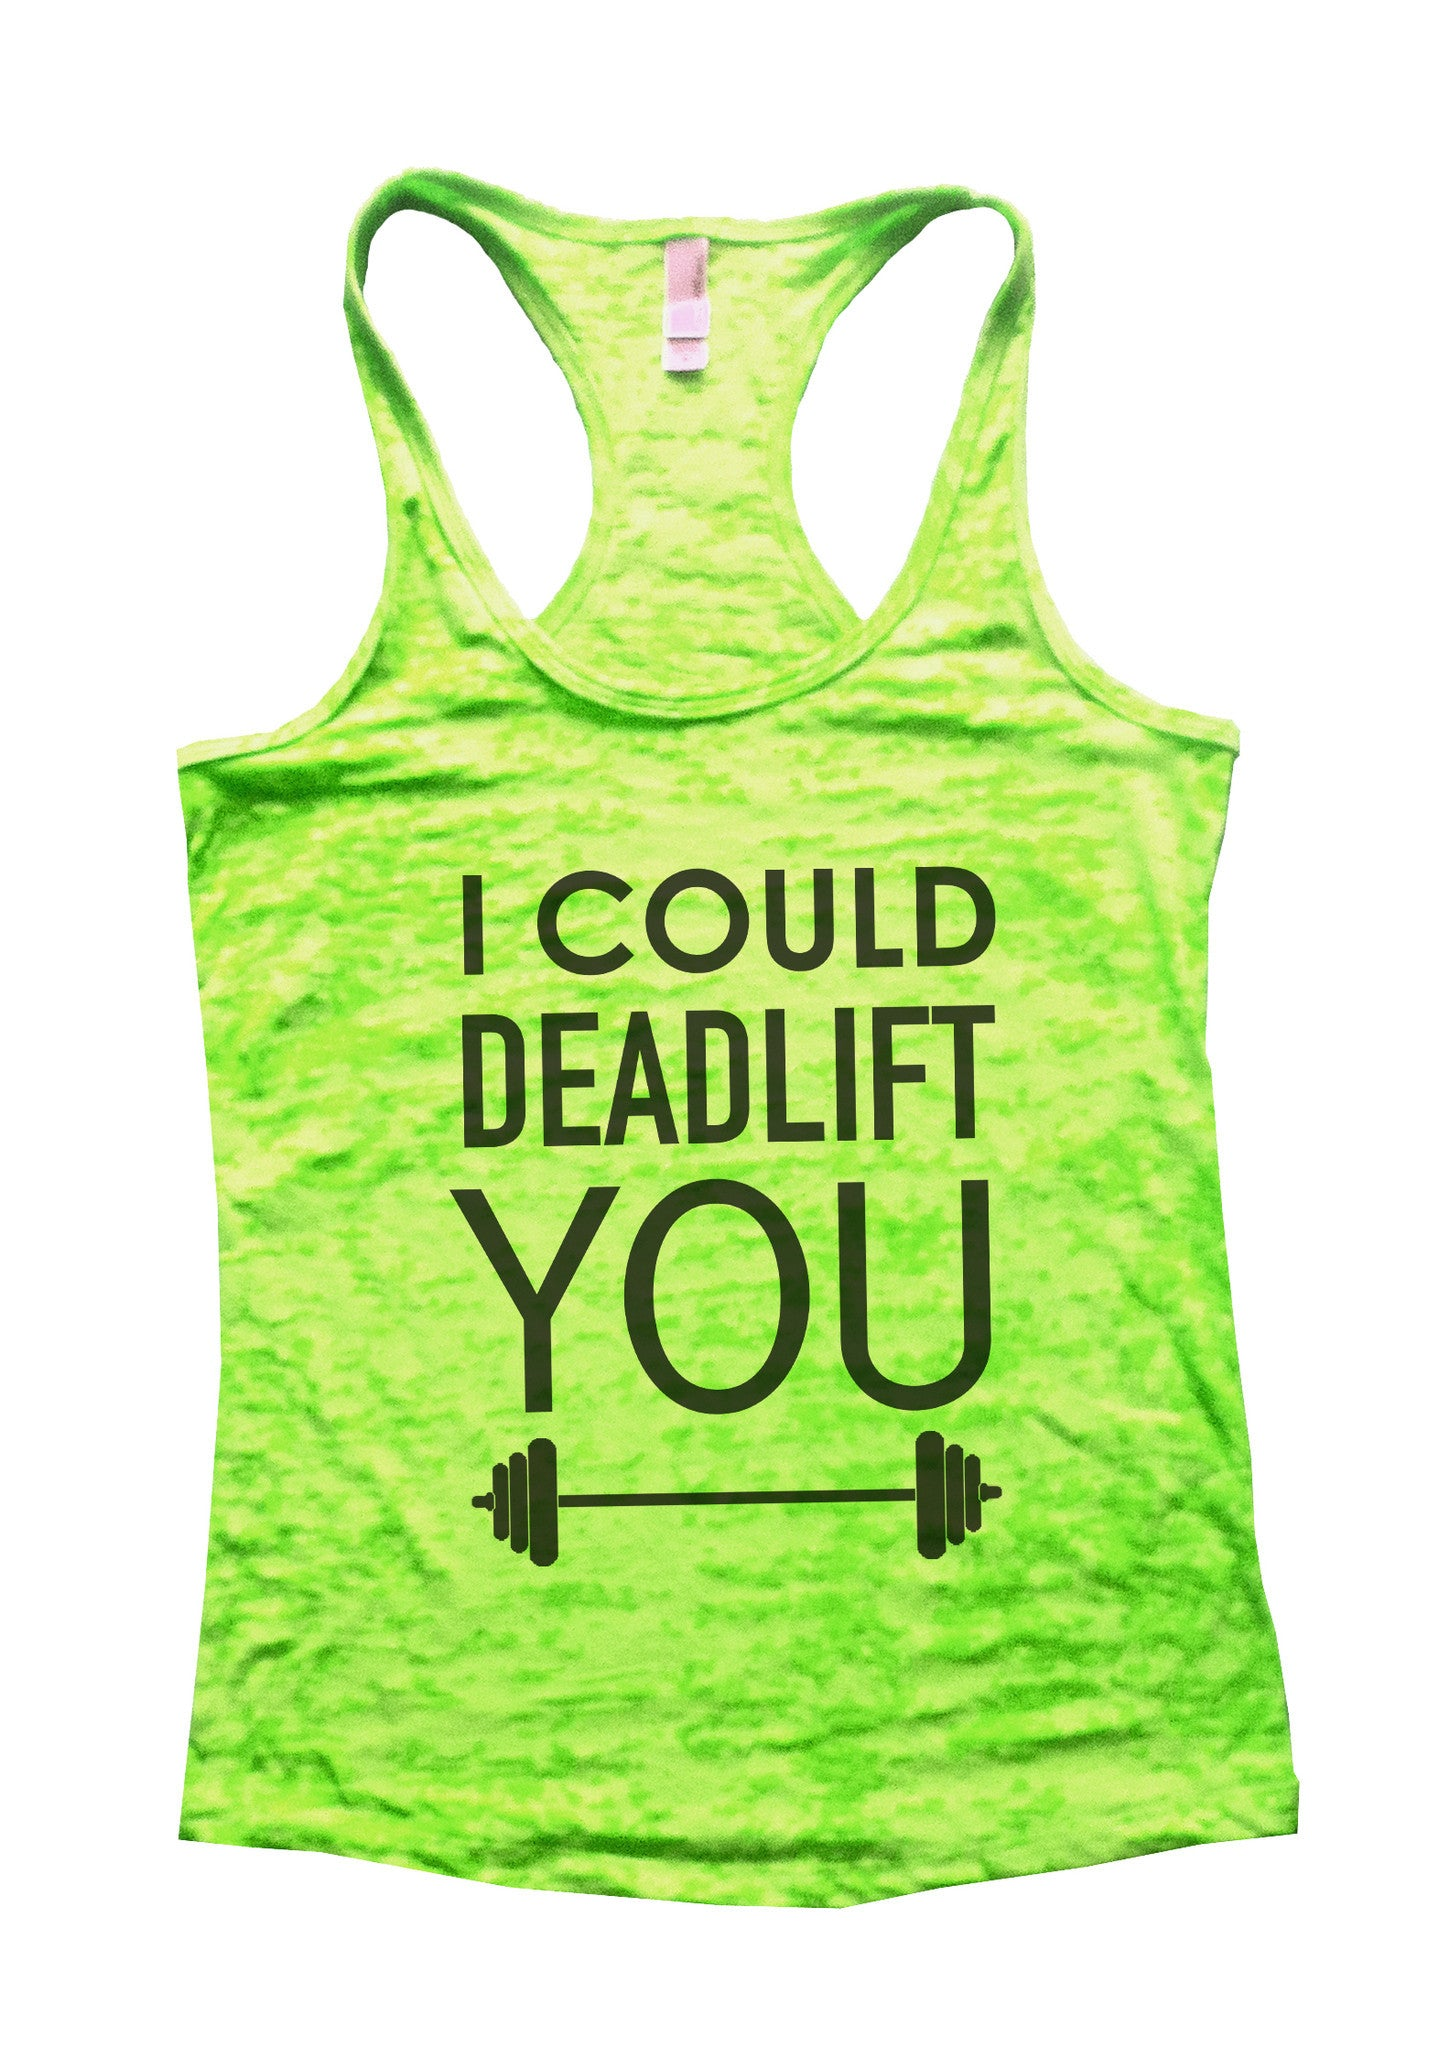 I Could Deadlift You Burnout Tank Top By BurnoutTankTops.com - 552 - Funny Shirts Tank Tops Burnouts and Triblends  - 1